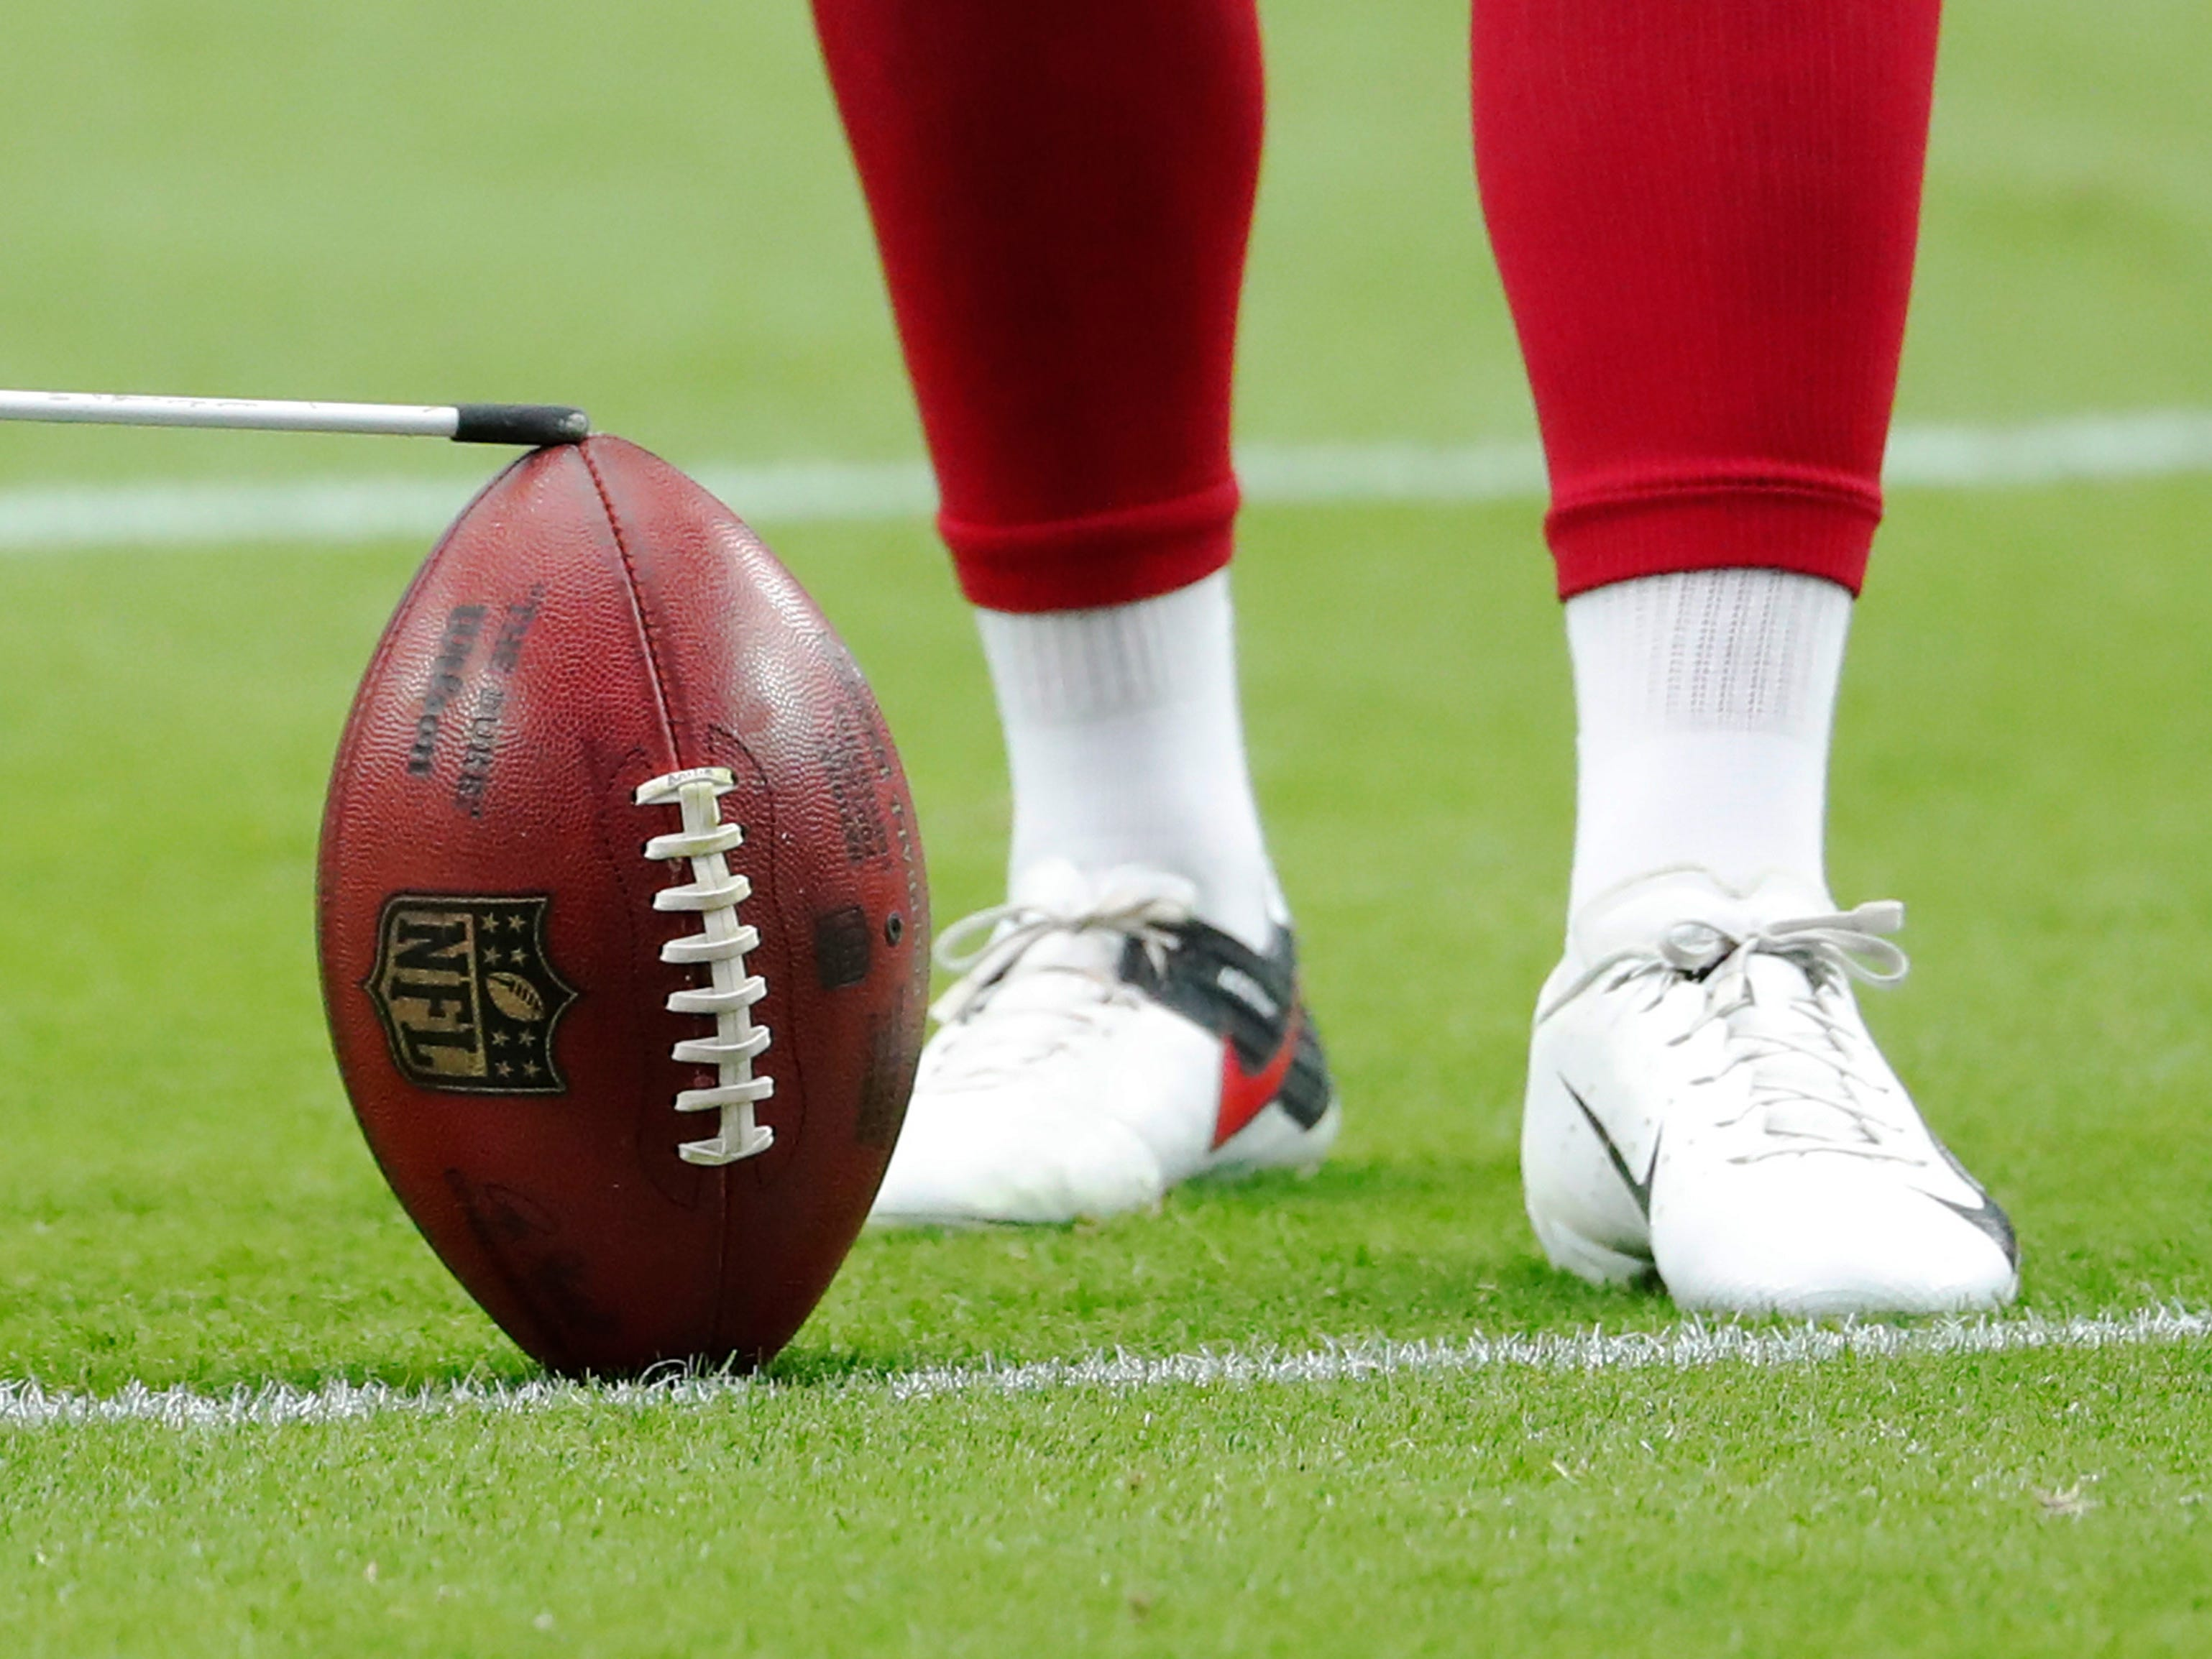 Arizona Cardinals kicker Phil Dawson (4) warms up before NFL action against the Chicago Bears at State Farm Stadium in Glendale, Ariz. September 23, 2018.